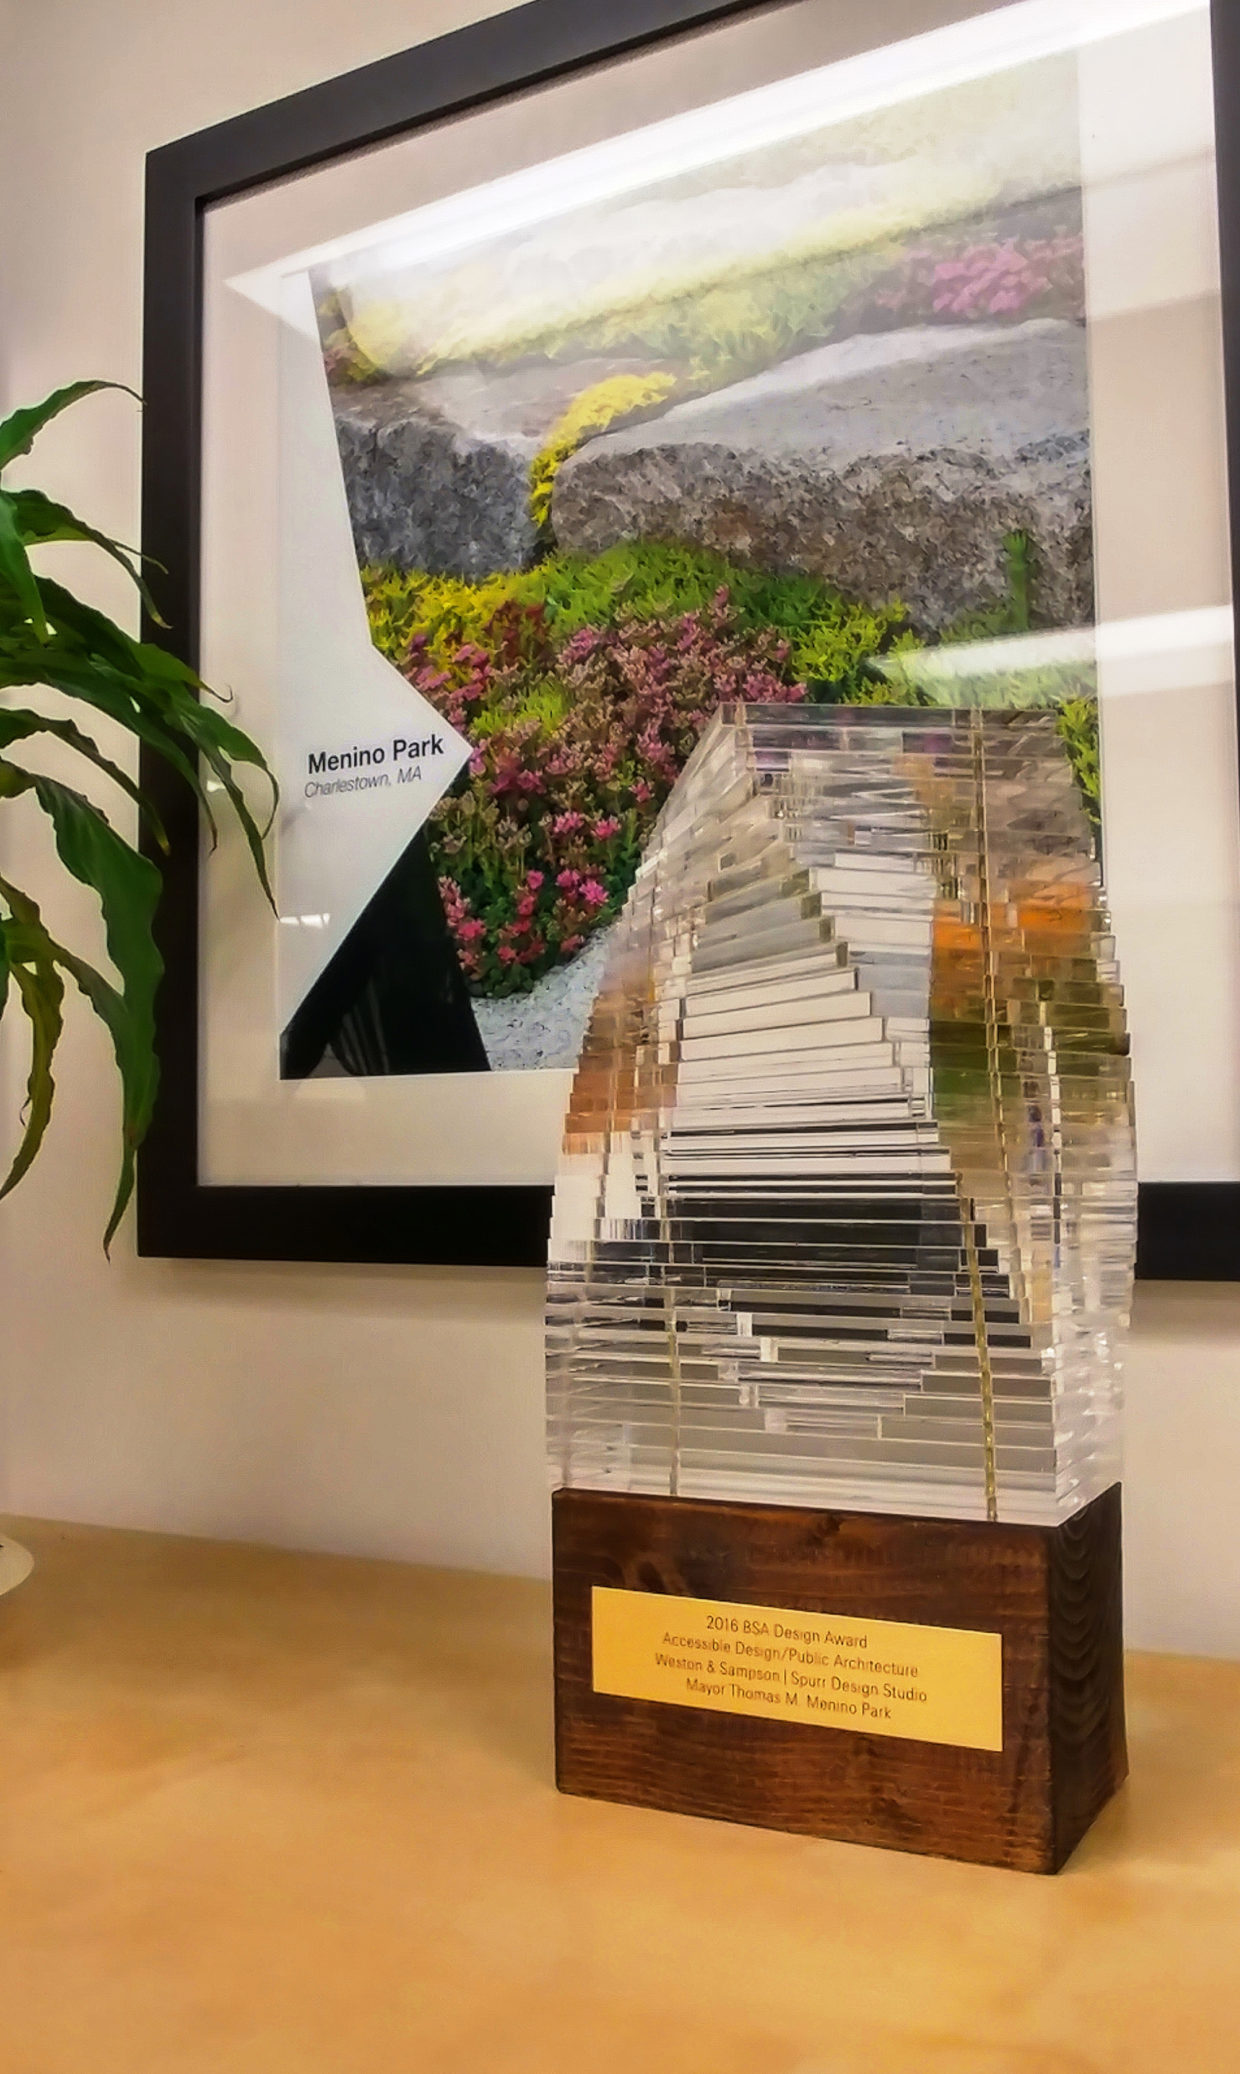 2016 Hobson Award for Excellence in Accessible Design